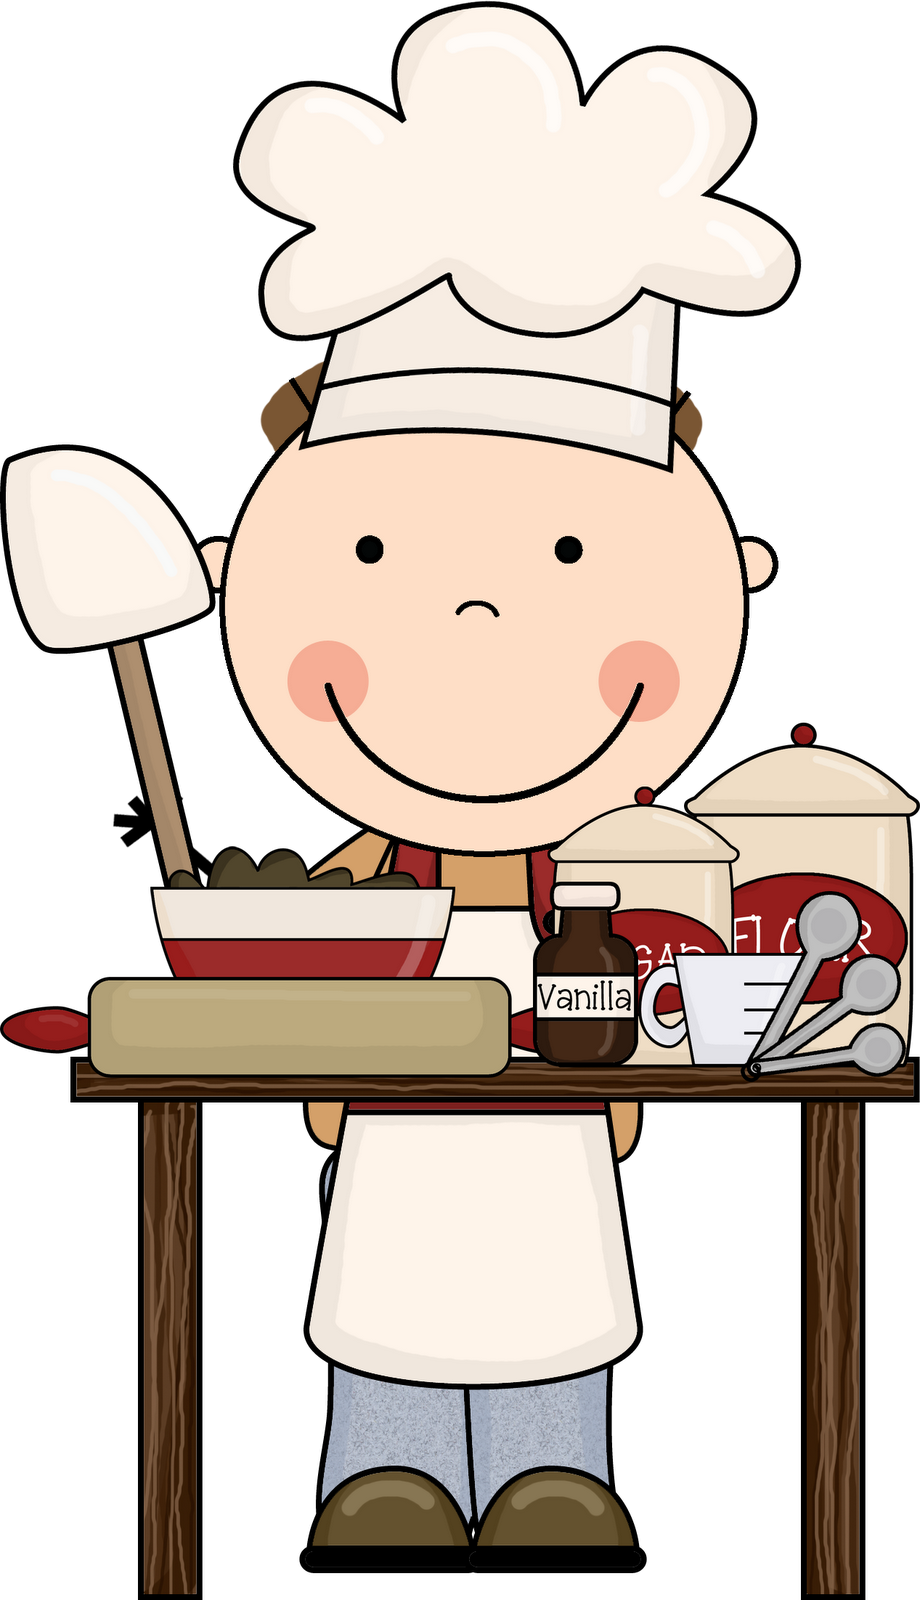 Cartoon clipart kitchen. Free cooking pictures for